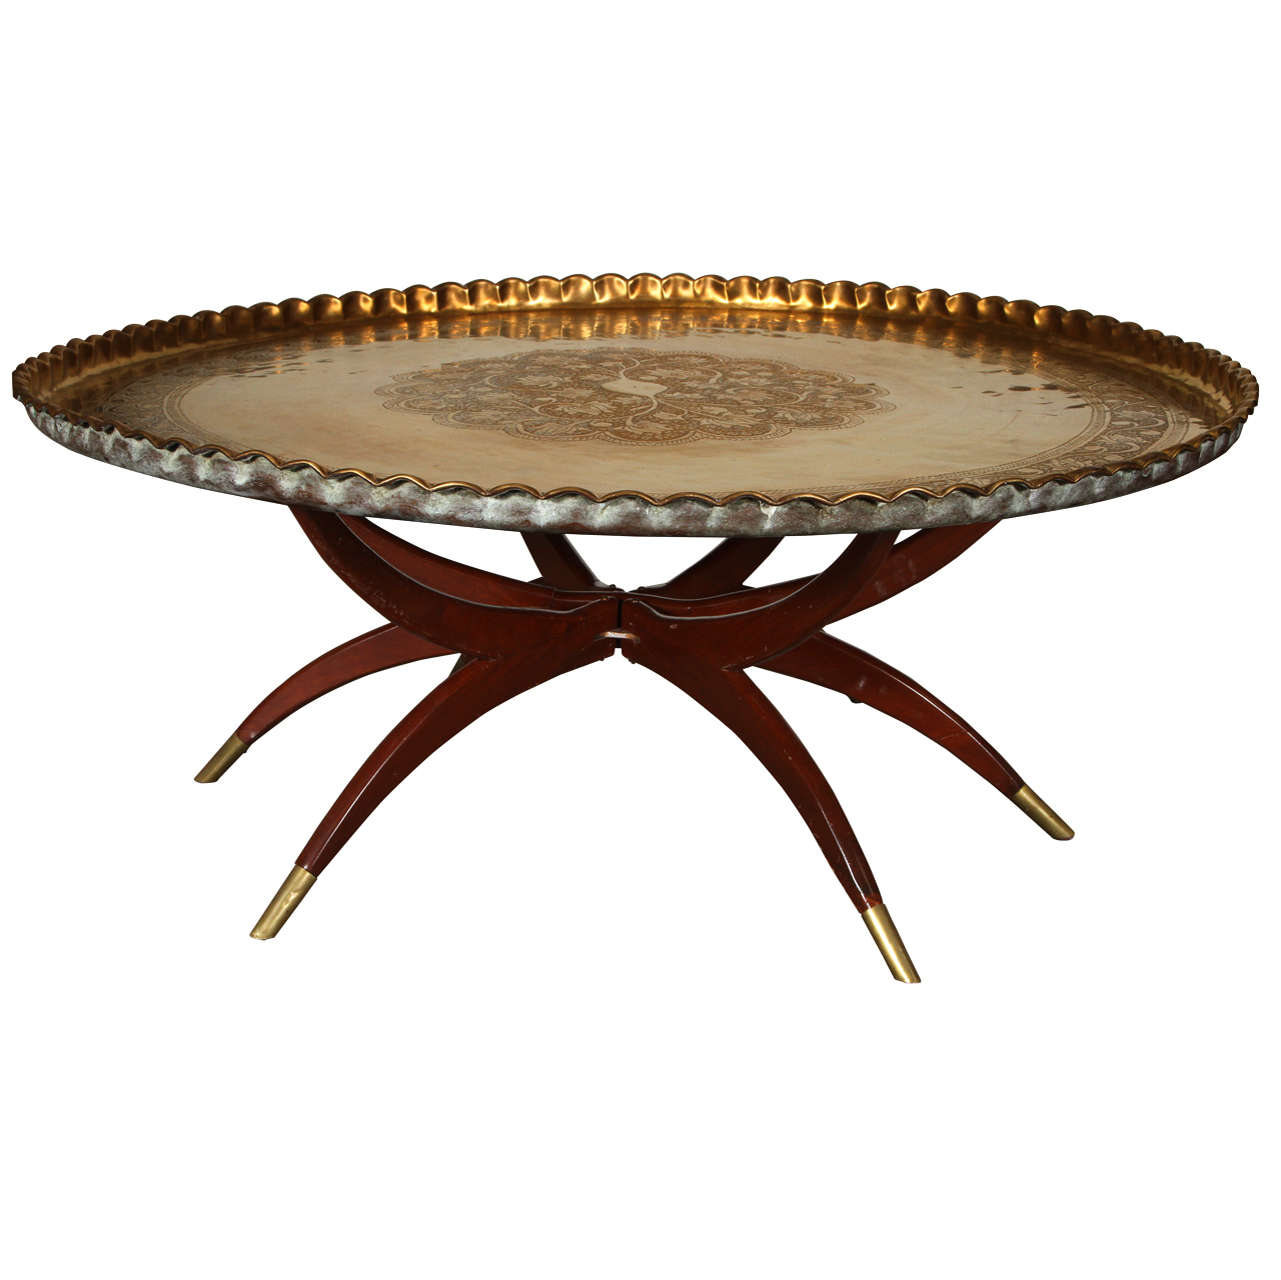 Charmant Large Moroccan Round Brass Tray Table On Folding Stand 45 In.